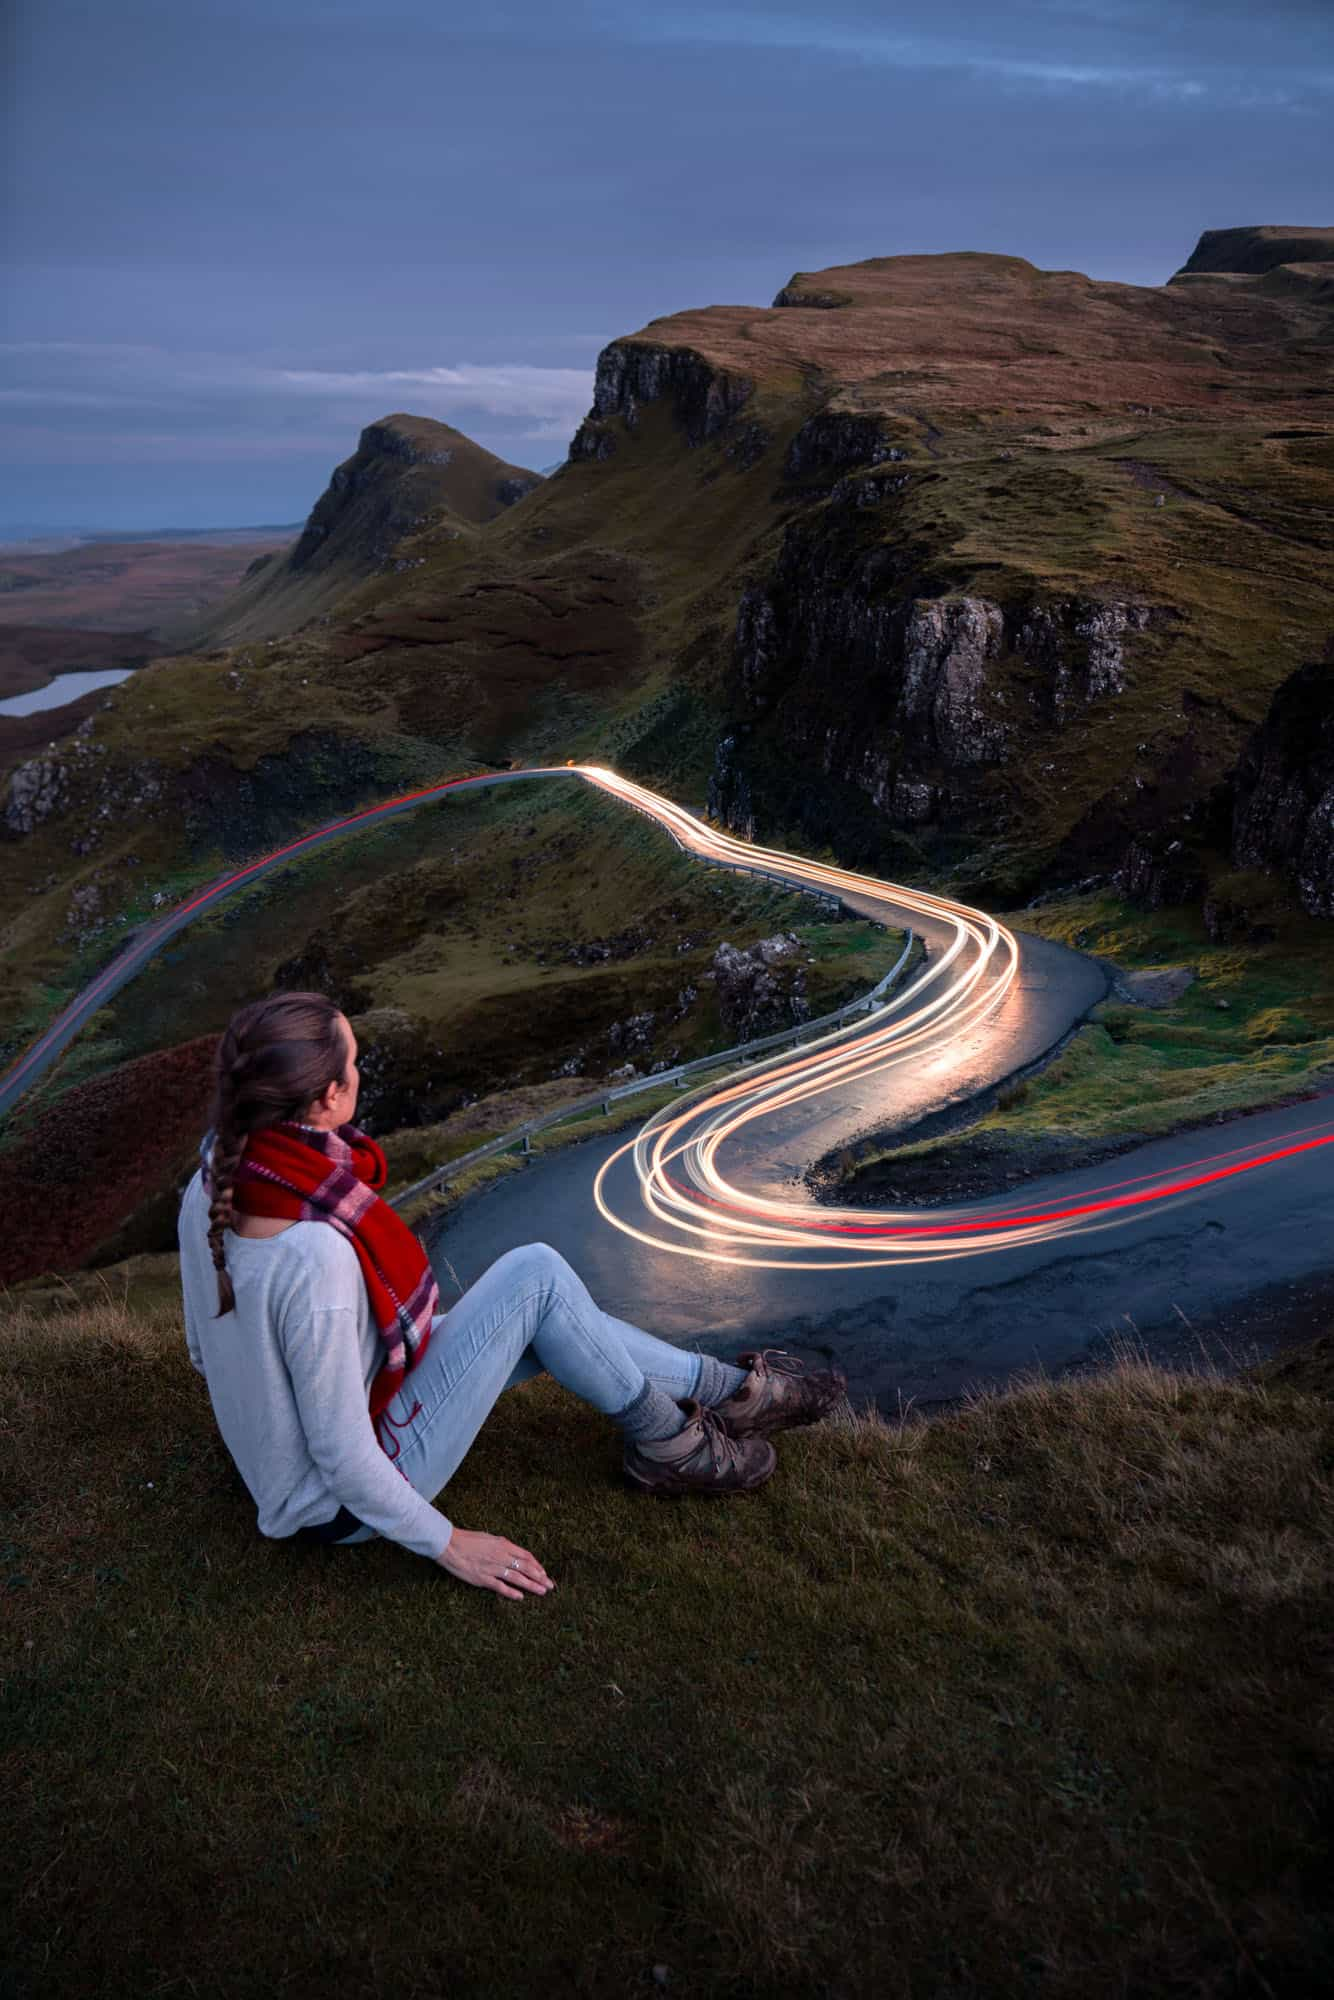 Watching cars drive by high above Quiraing on a 10 days in Scotland road trip.